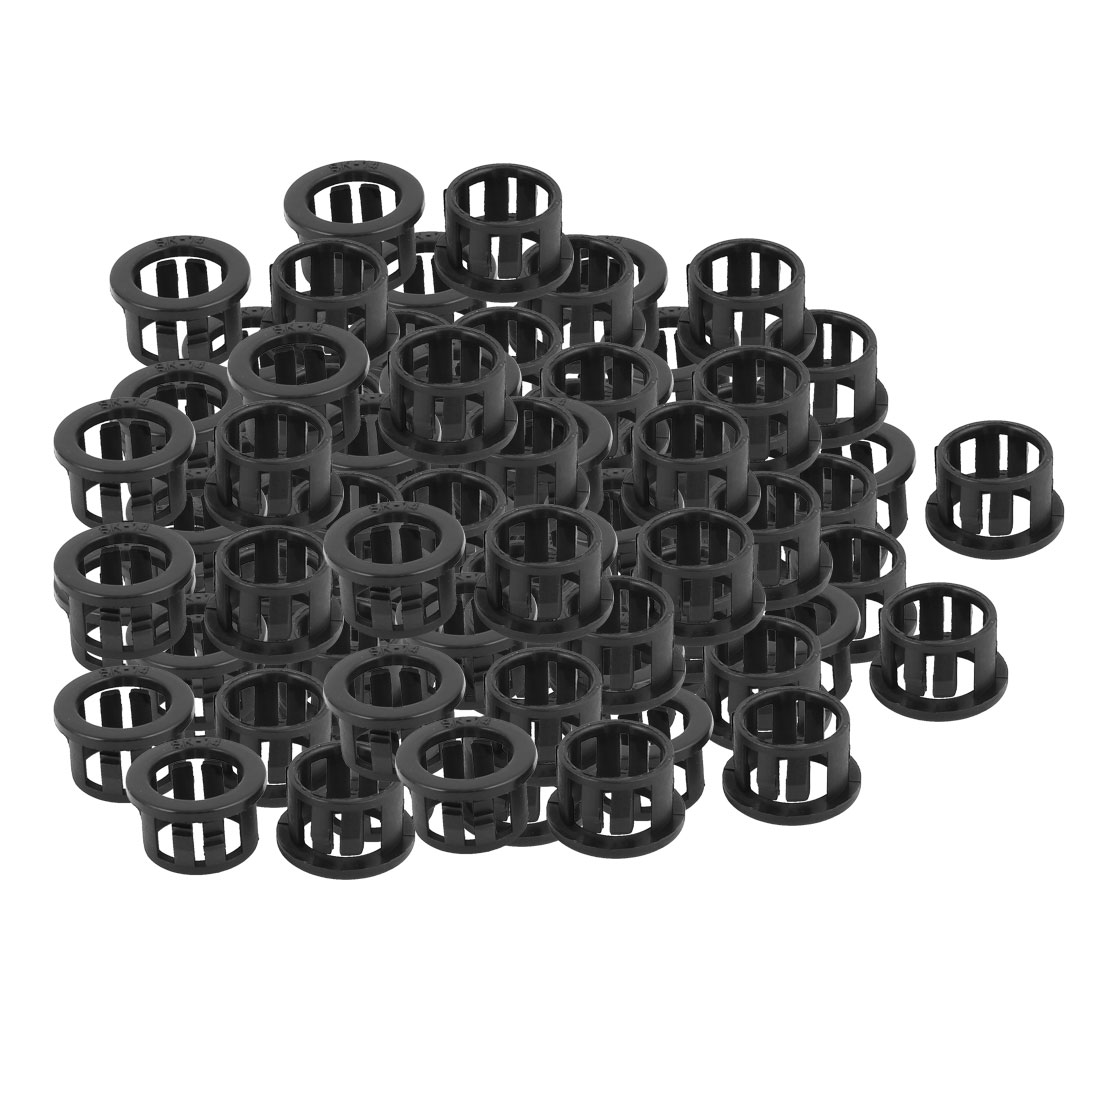 100 Pcs 11.5mm x 14mm Round Cable Harness Protective Snap Bushing SK-14 Black